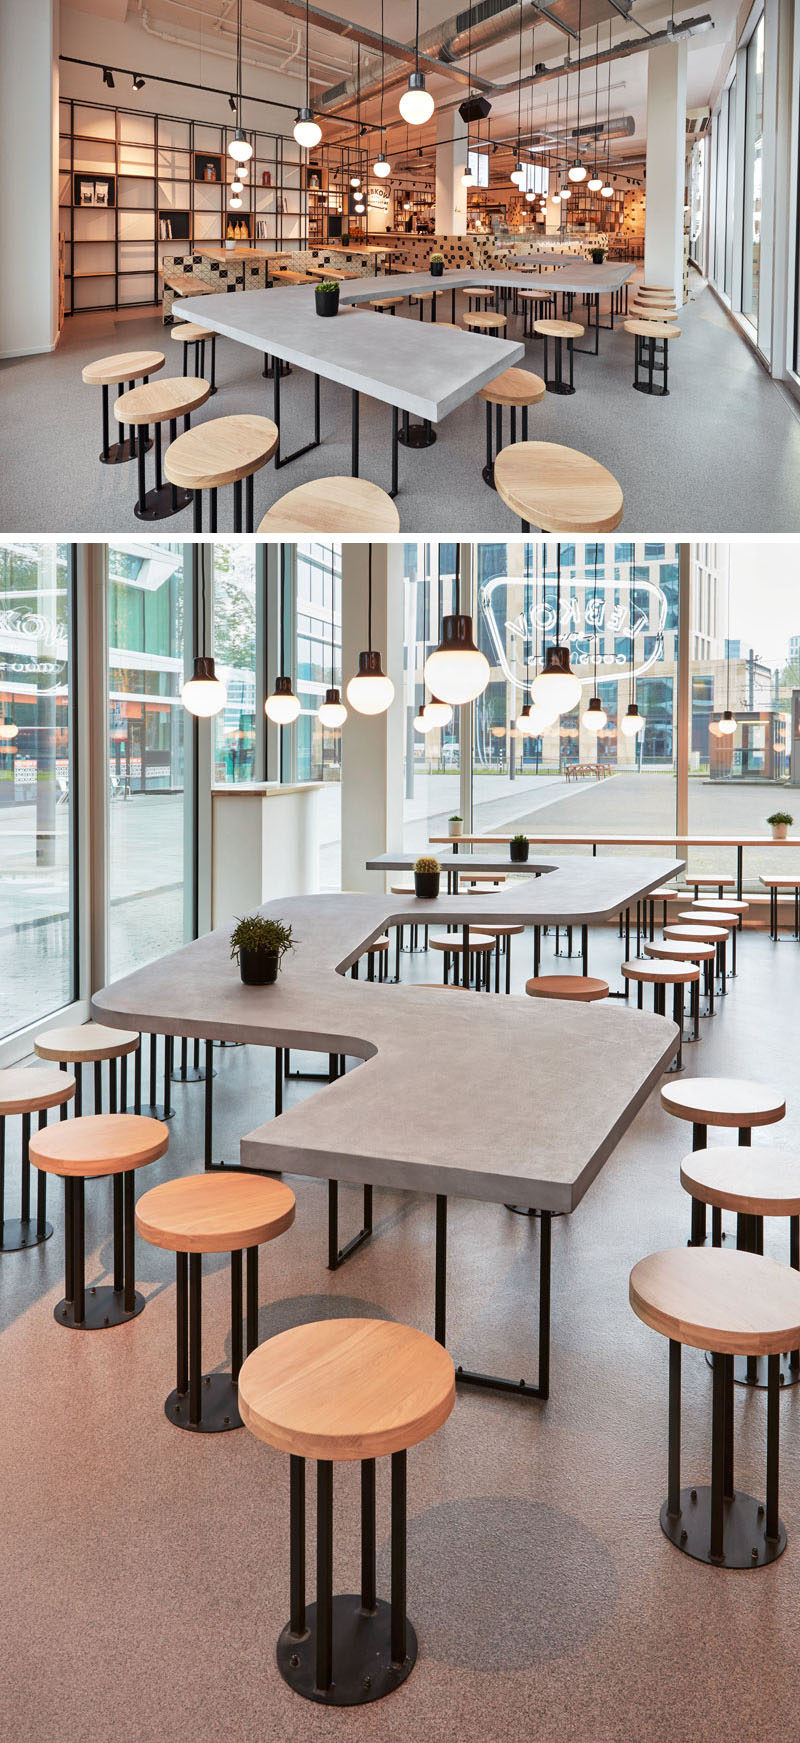 This modern cafe features a a snake-like, concrete shared table along the facade. #CafeDesign #TableDesign #CafeTable #CoffeeShop #CommunalTable